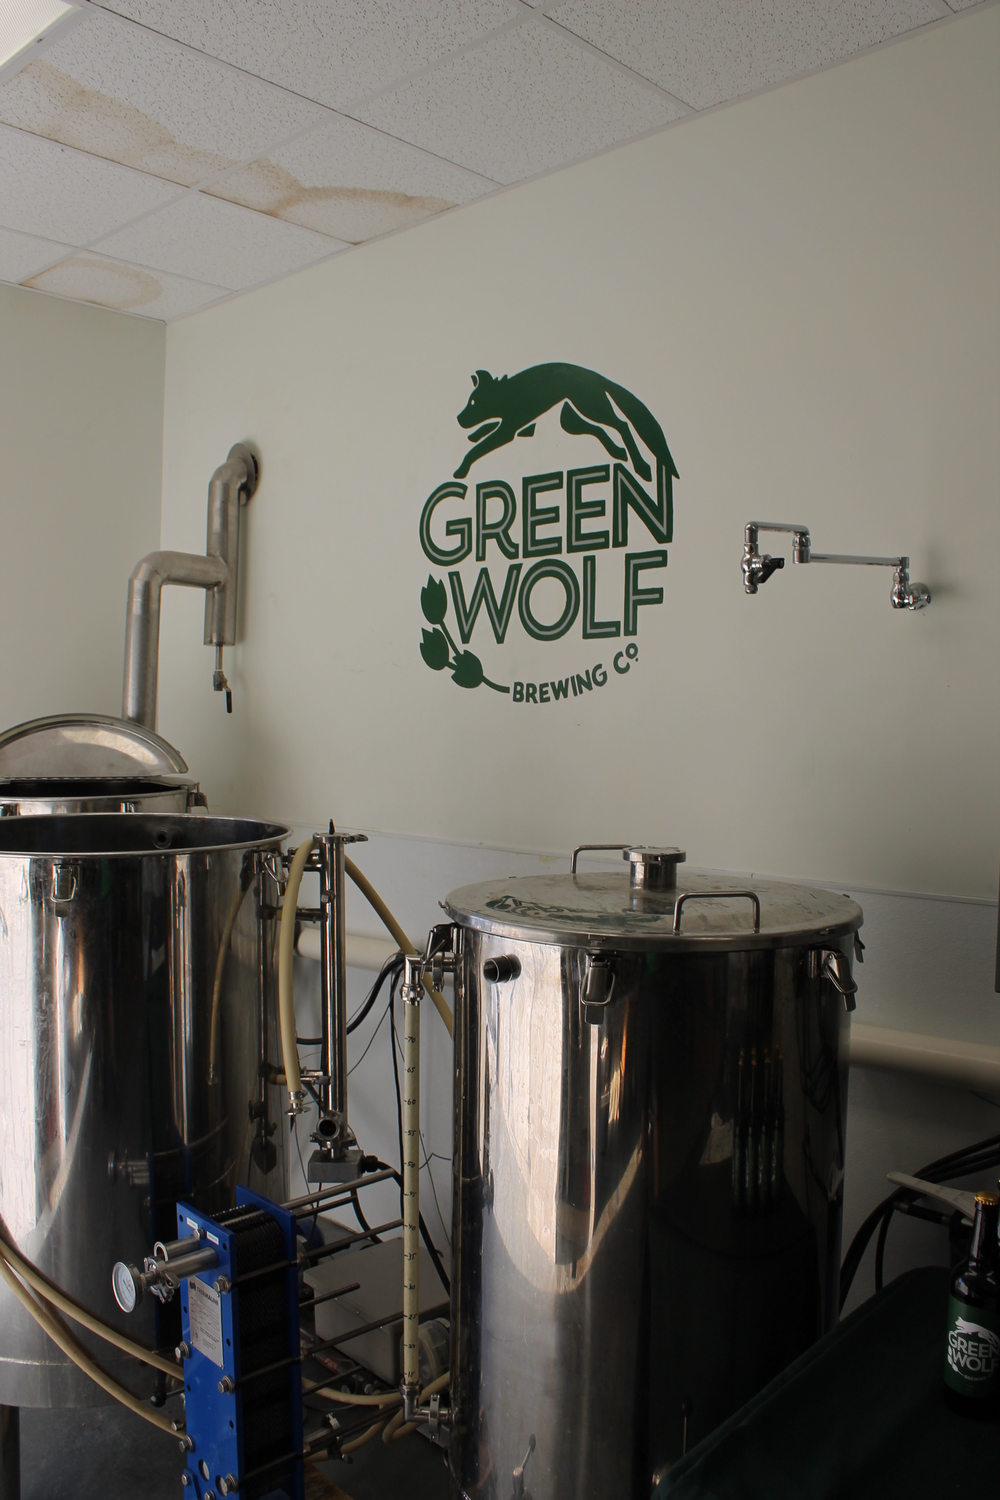 The brewing system.